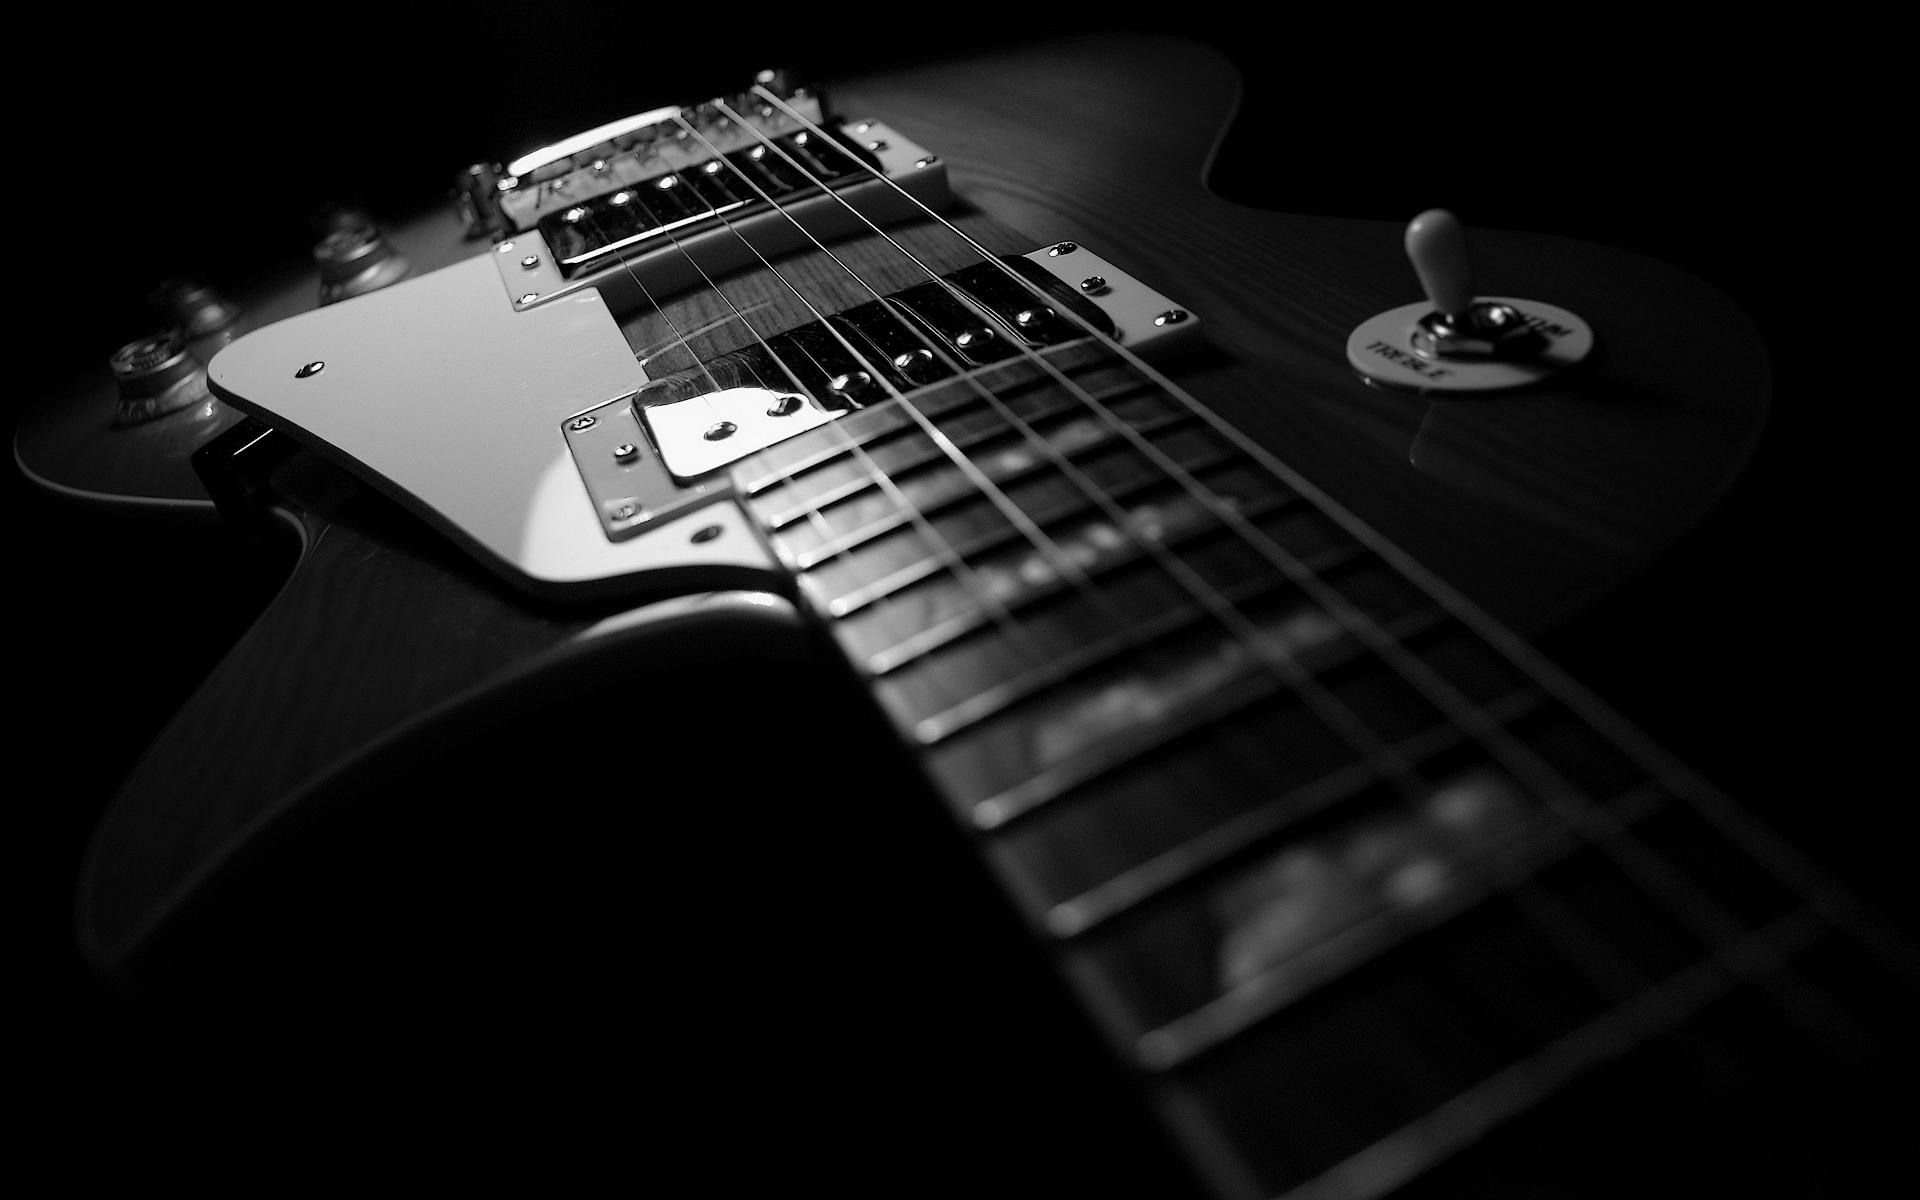 55 EC 1000 Guitar Wallpapers   Download at WallpaperBro 1920x1200